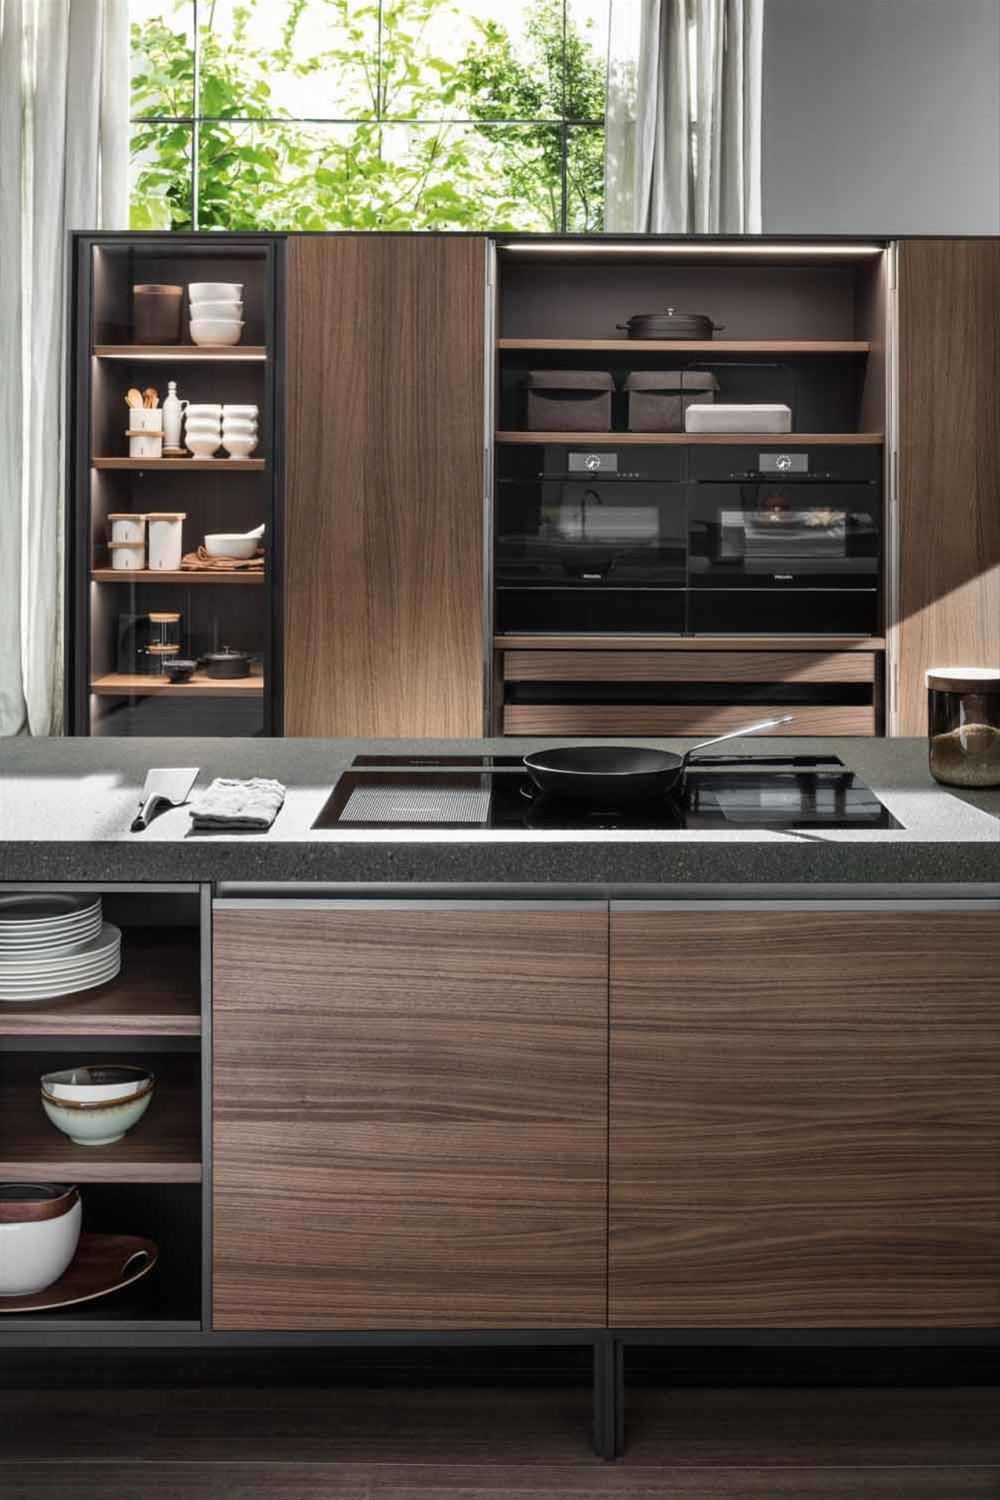 Cucina In Dada The Wood For Design Kitchens Designed By Dada Dada